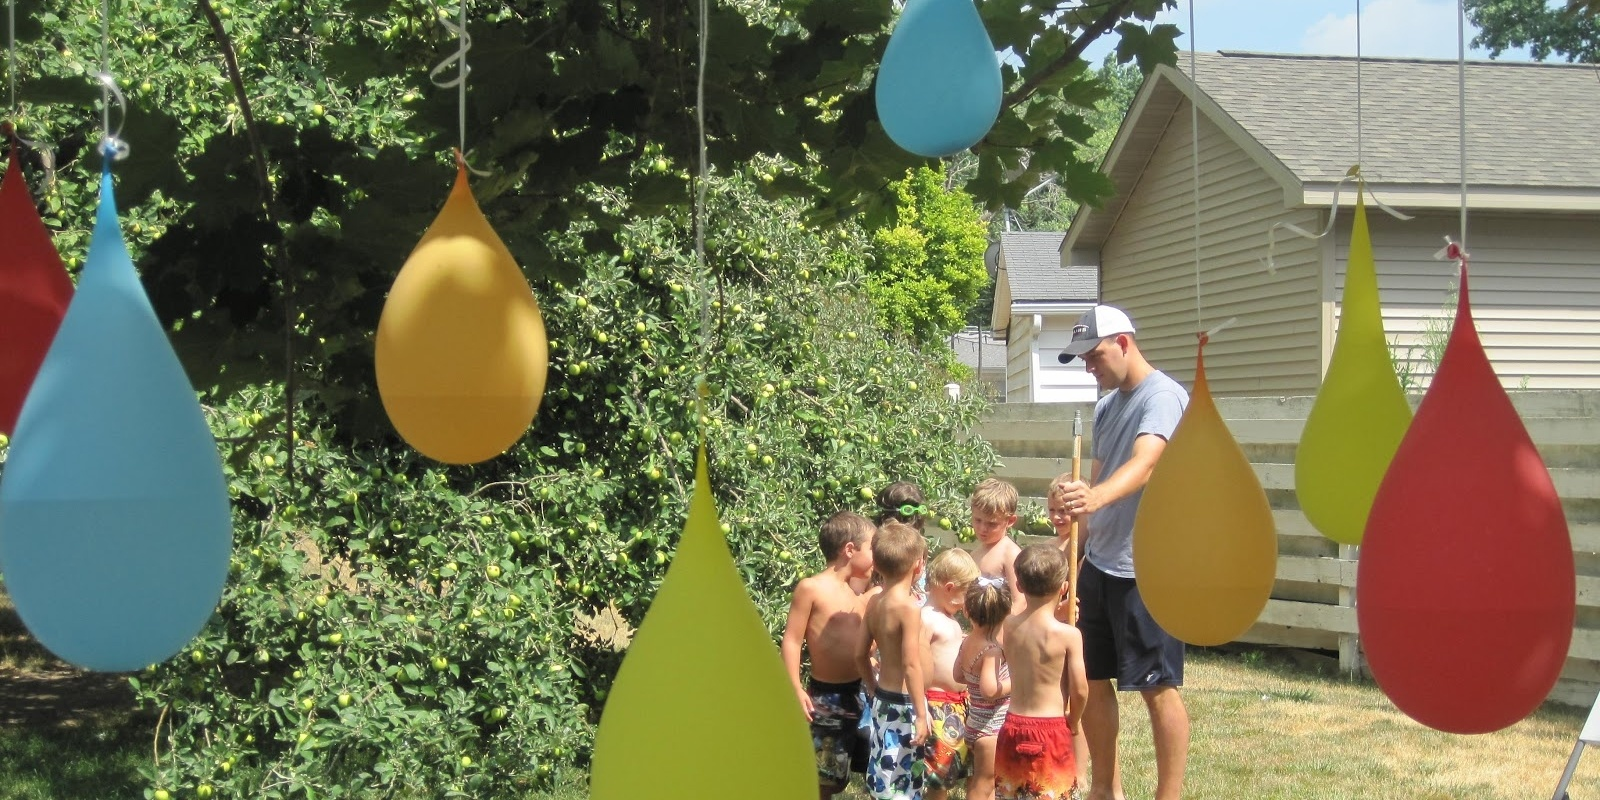 water-ballon-pinata-backyard.jpg